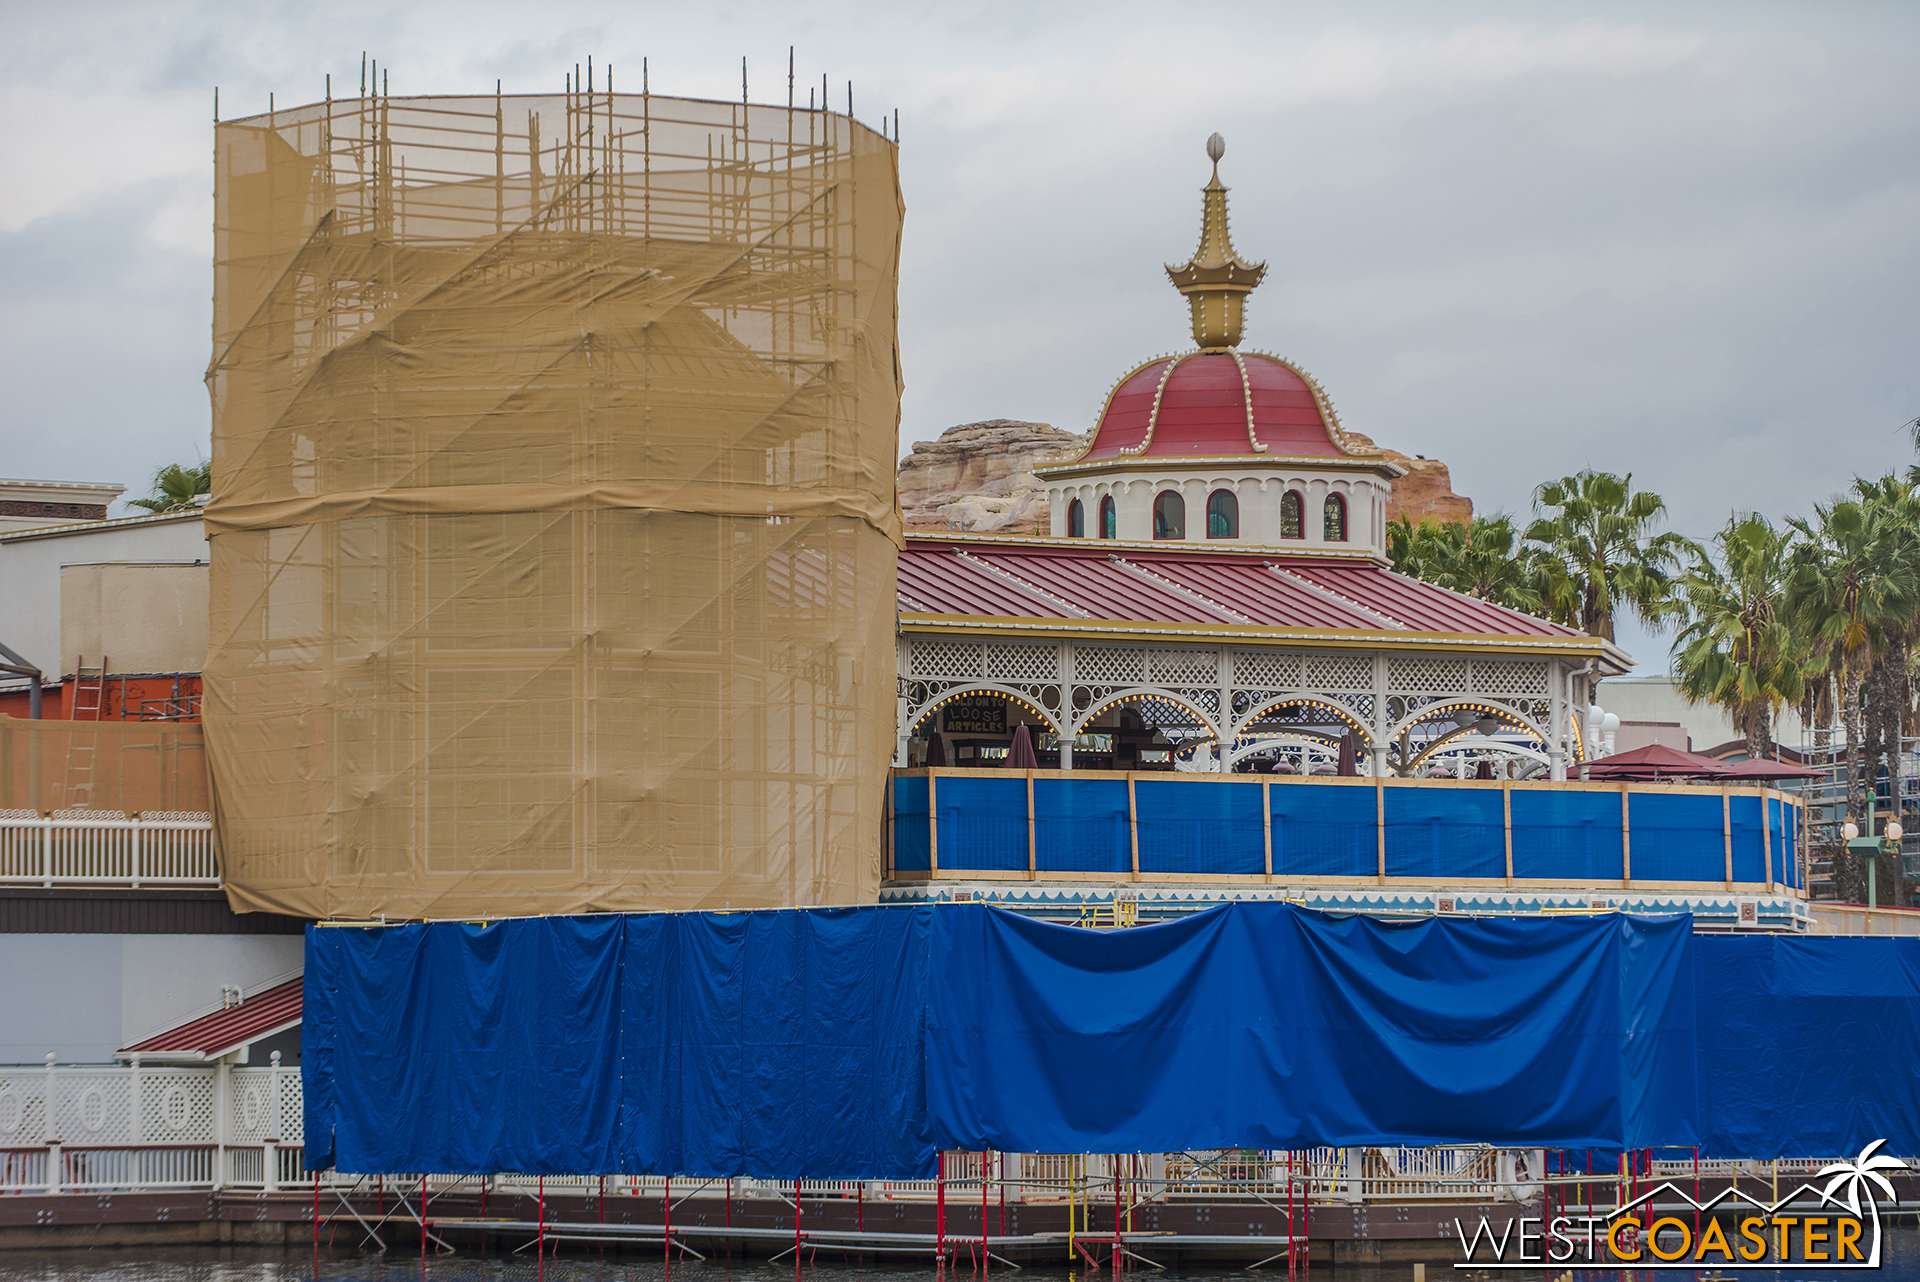 Like everything else on Pixar Pier, this will be receiving a new color scheme.